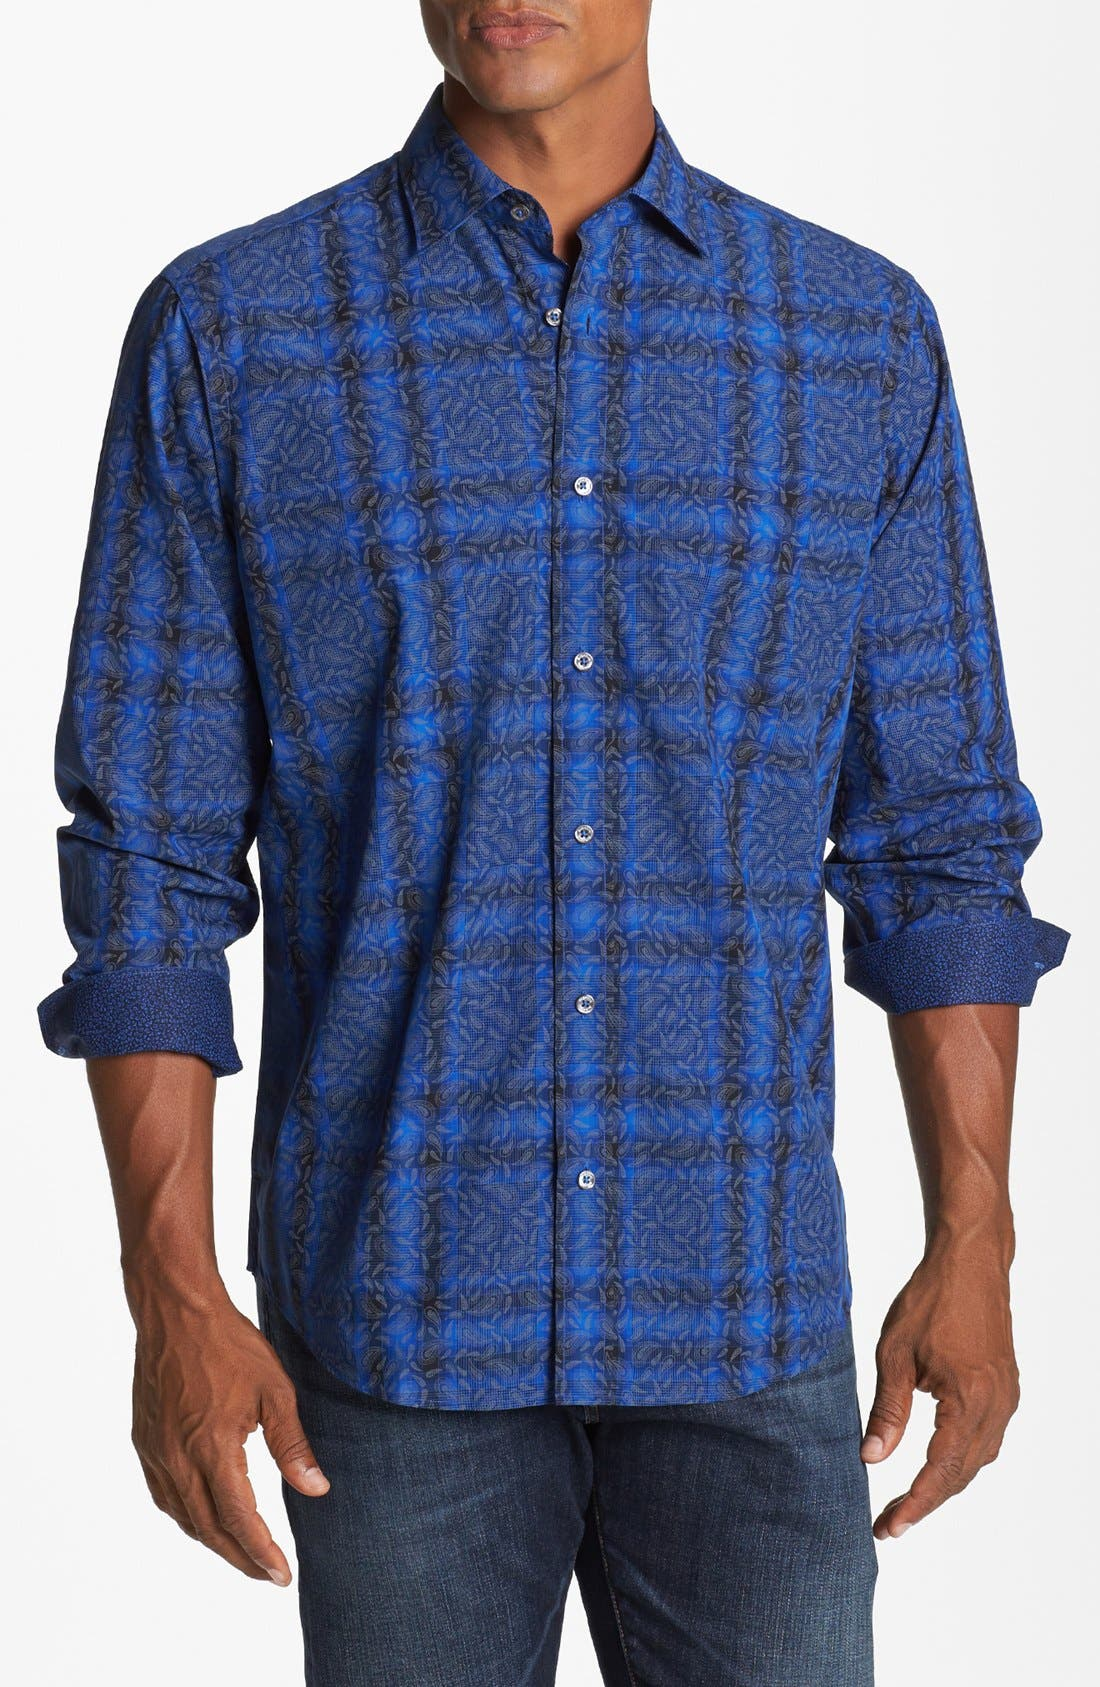 Alternate Image 1 Selected - Bugatchi Paisley Check Classic Fit Cotton Sport Shirt (Tall)